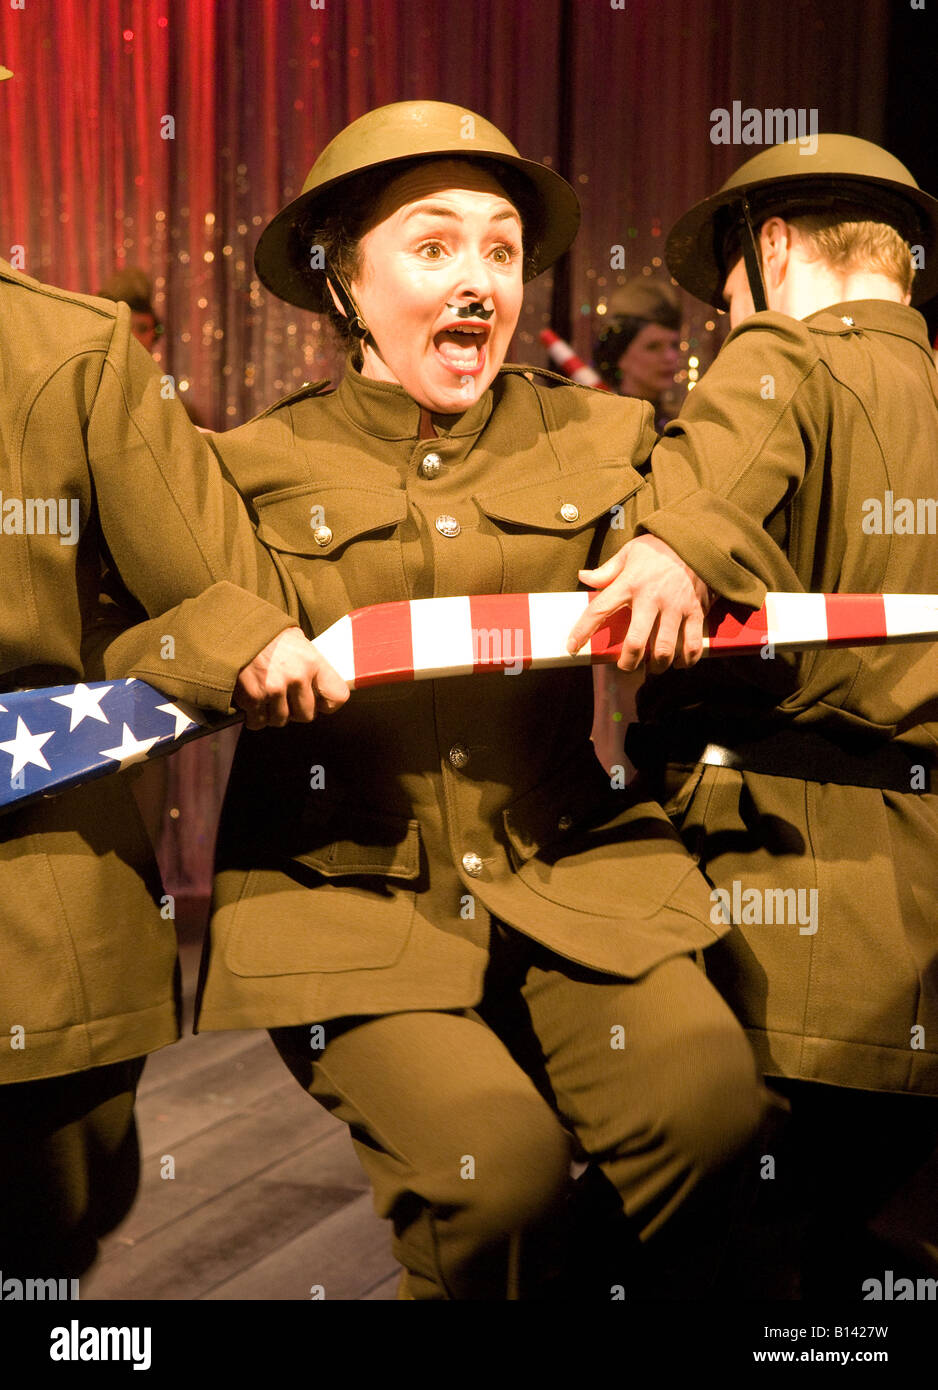 Samantha Spiro as Fanny Brice in Funny Girl Chichester Festival Theatre May 2008 - Stock Image